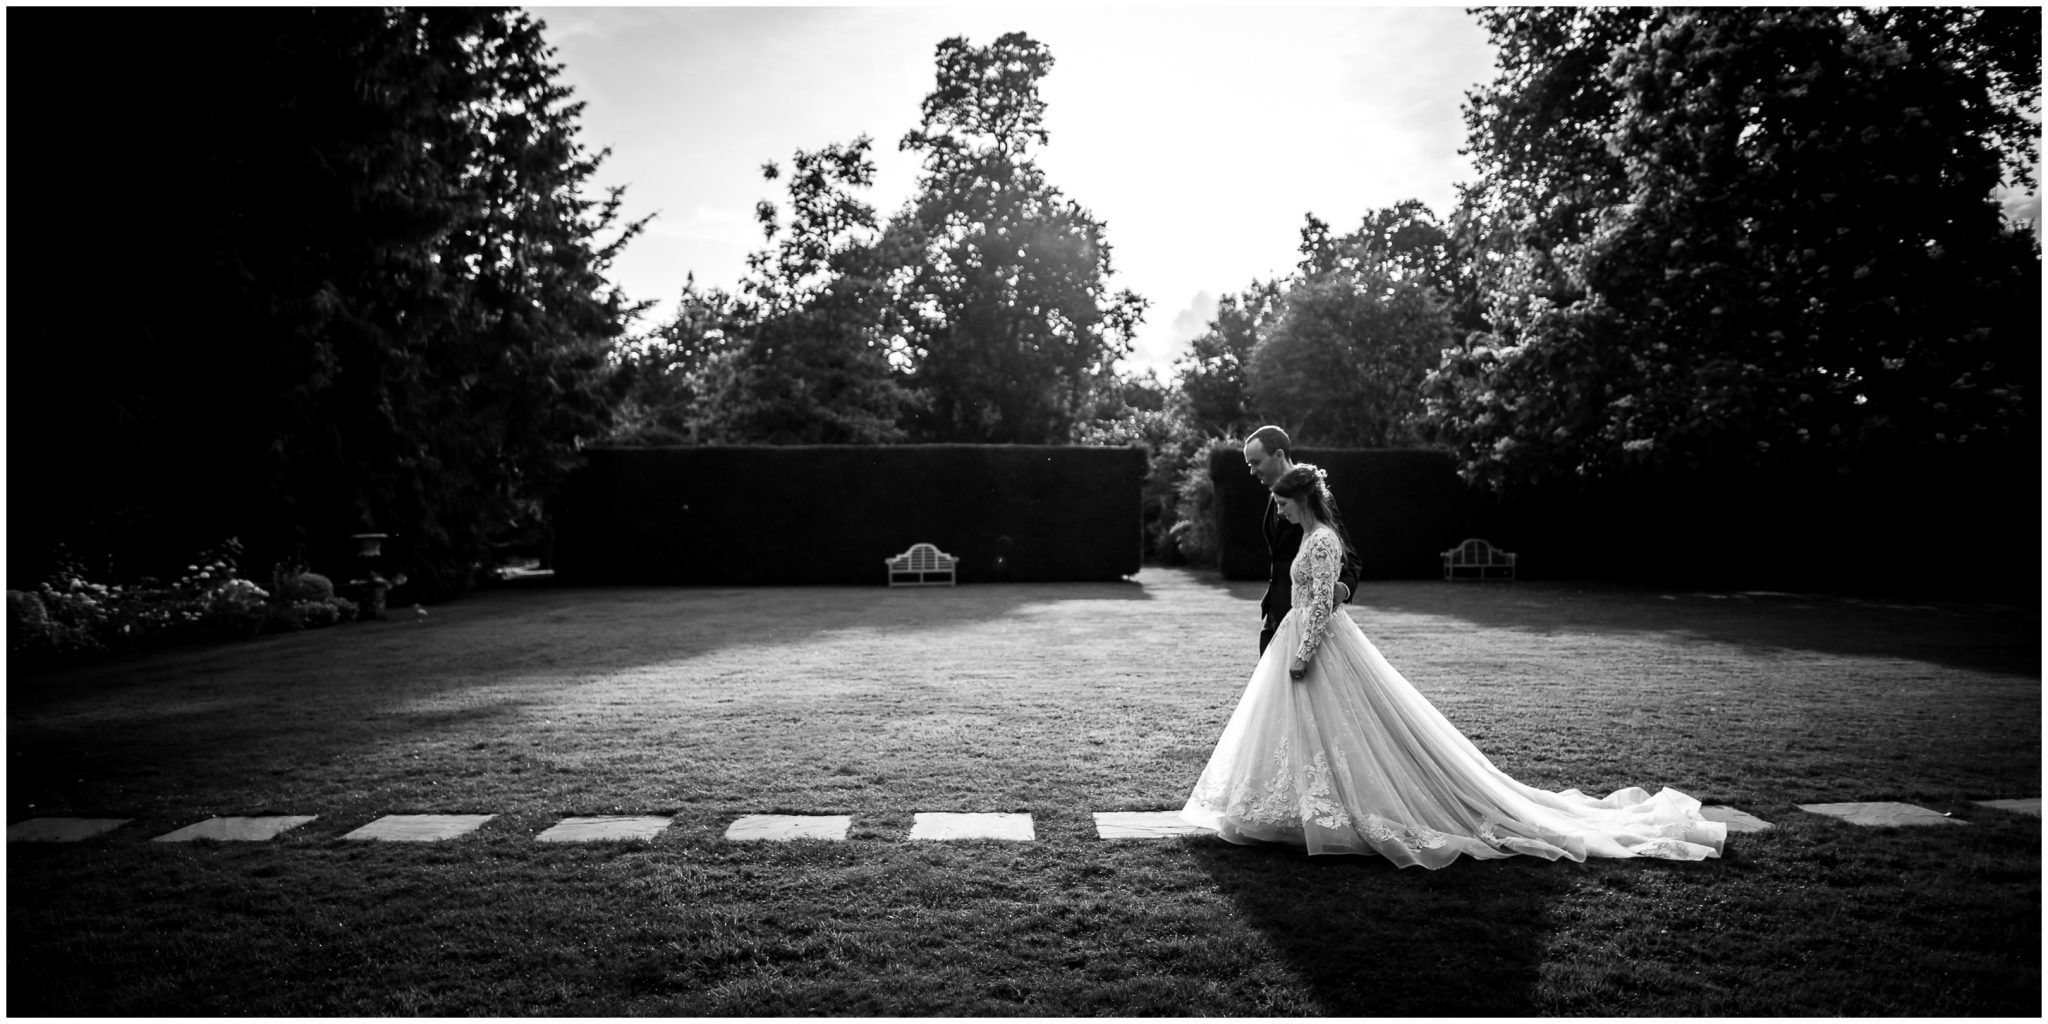 Black and white photo of bride and groom crossing the lawn on the way back to the party